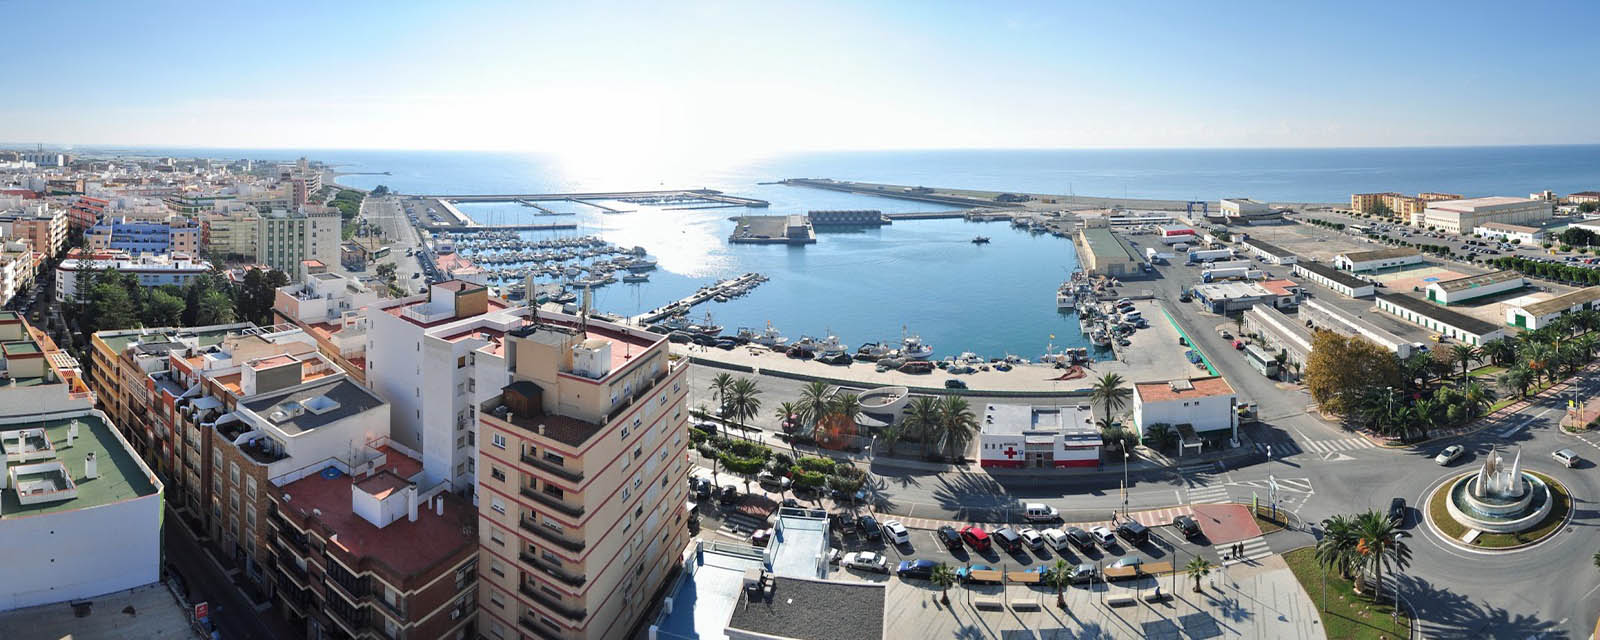 Call for a transfer to Adra from Malaga Airport | Get a taxi to your holidays!